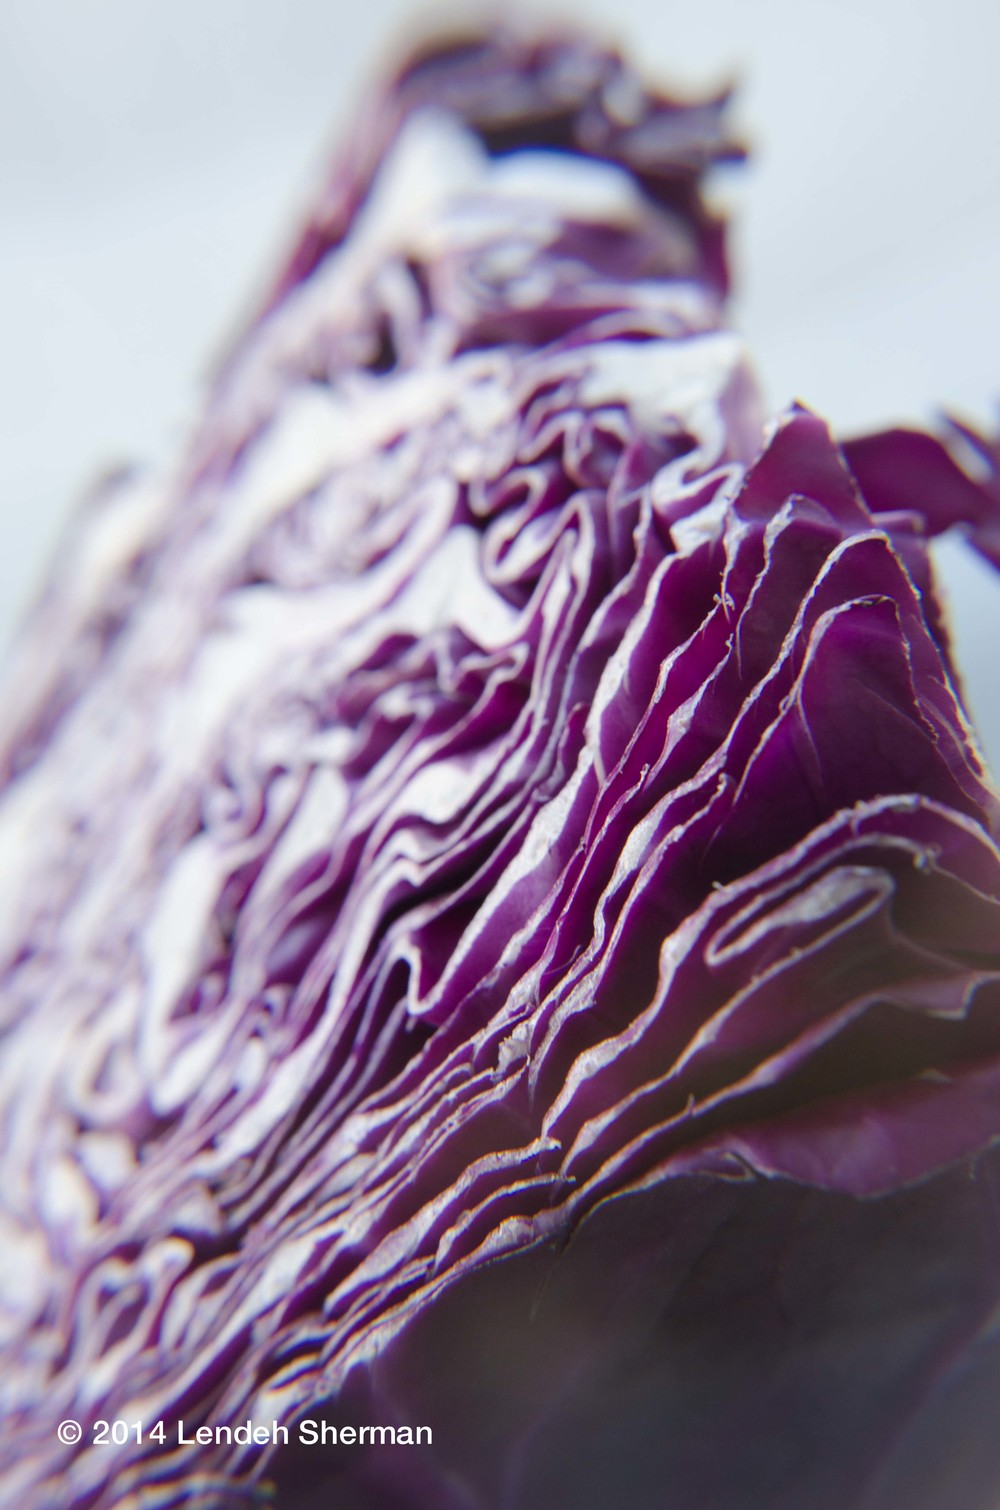 Photos of the day: Red cabbage.